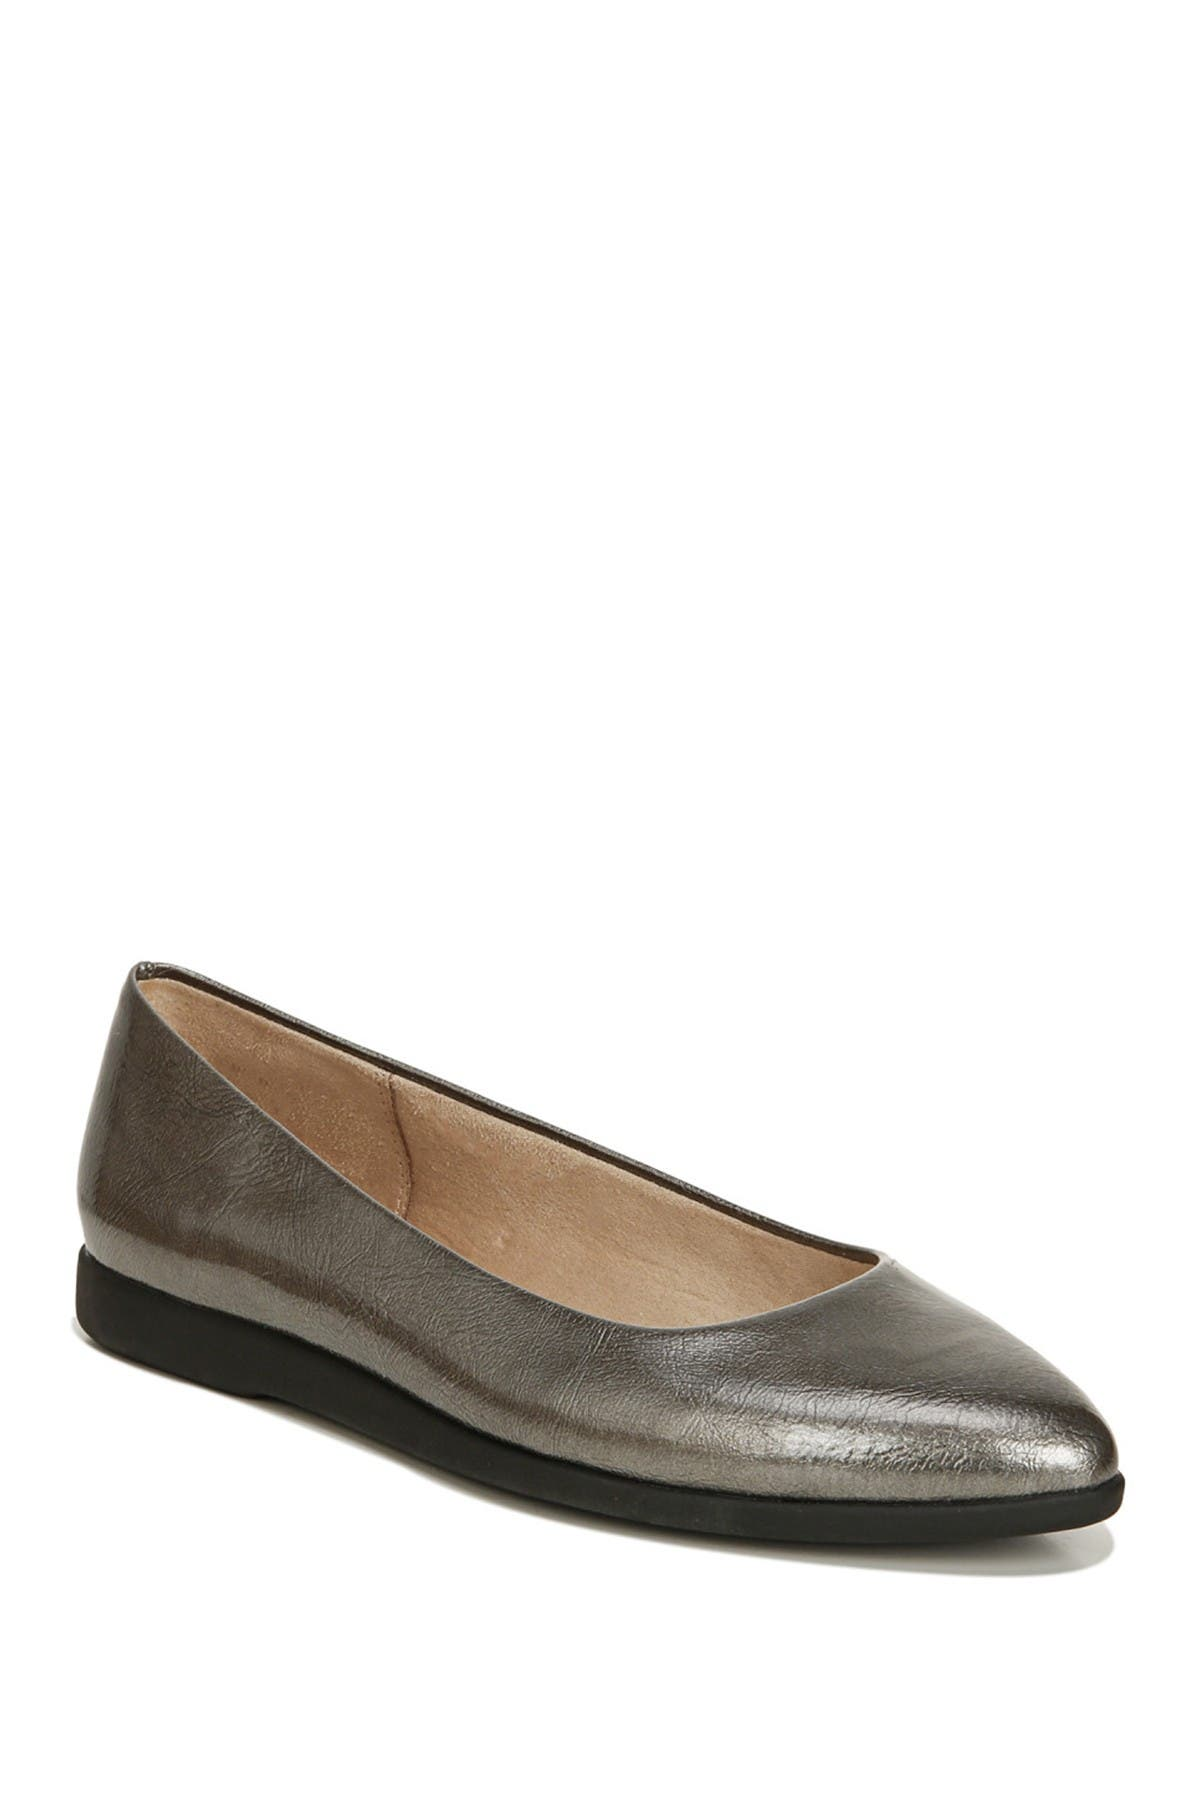 Image of LifeStride Amelia Pointed Toe Flat - Wide Width Available